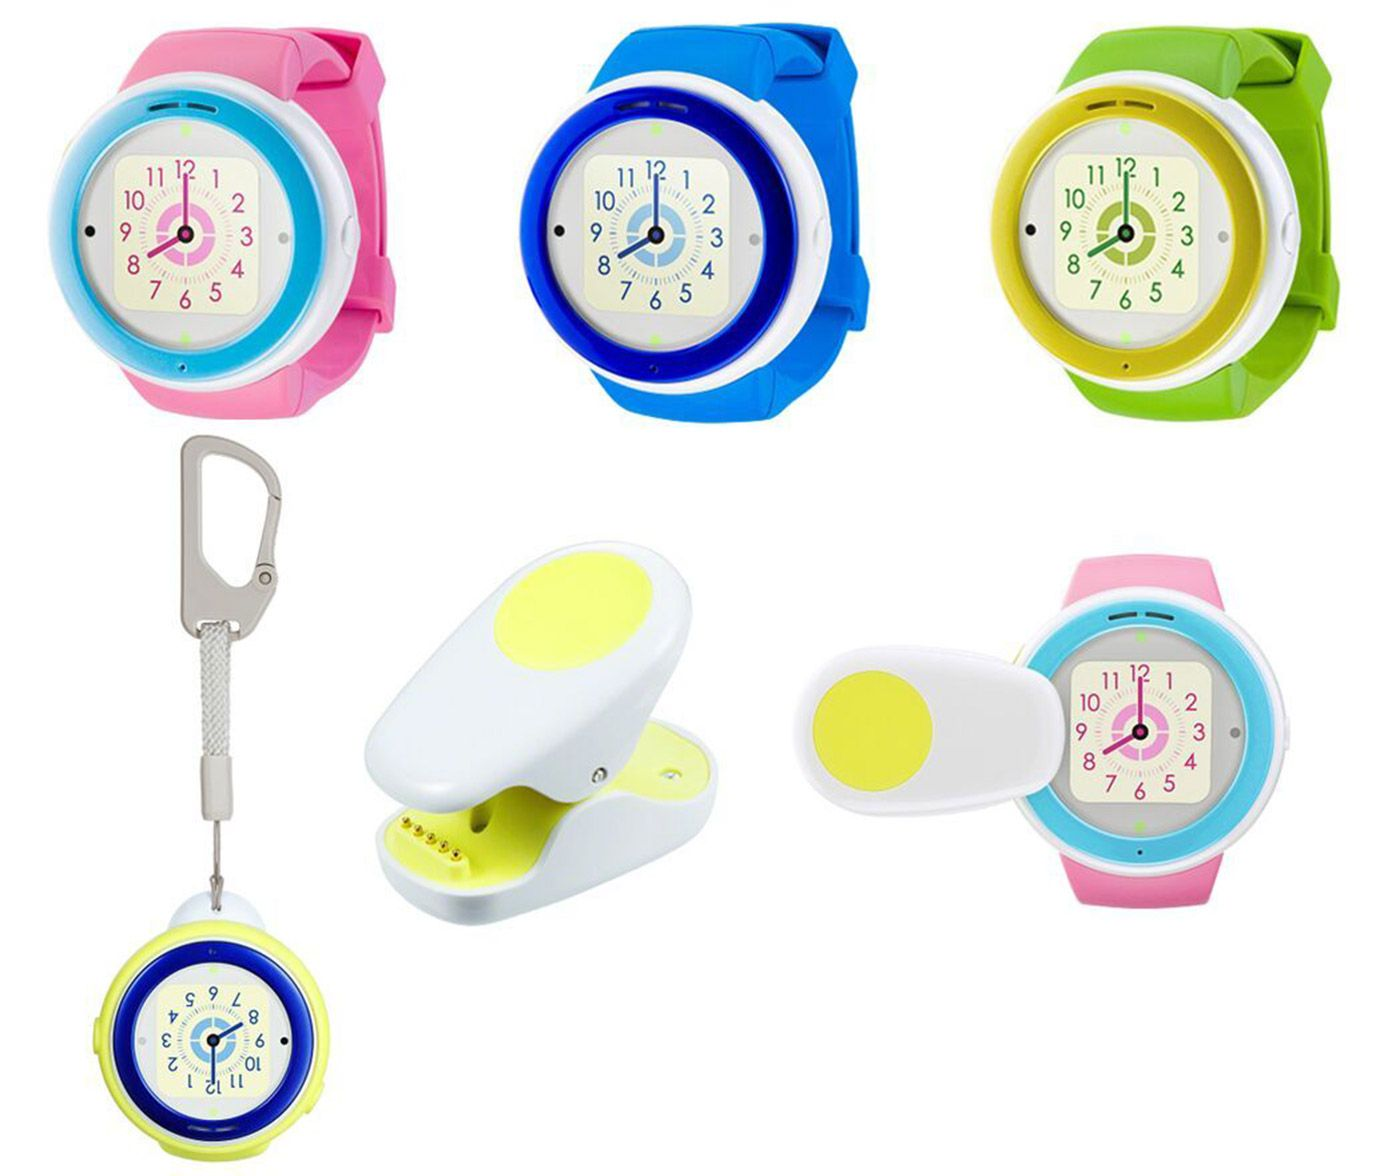 Parents Can Call Their Kids Directly On This Smartwatch In Japan Spy Gadgets Smart Watch Kids Wearables